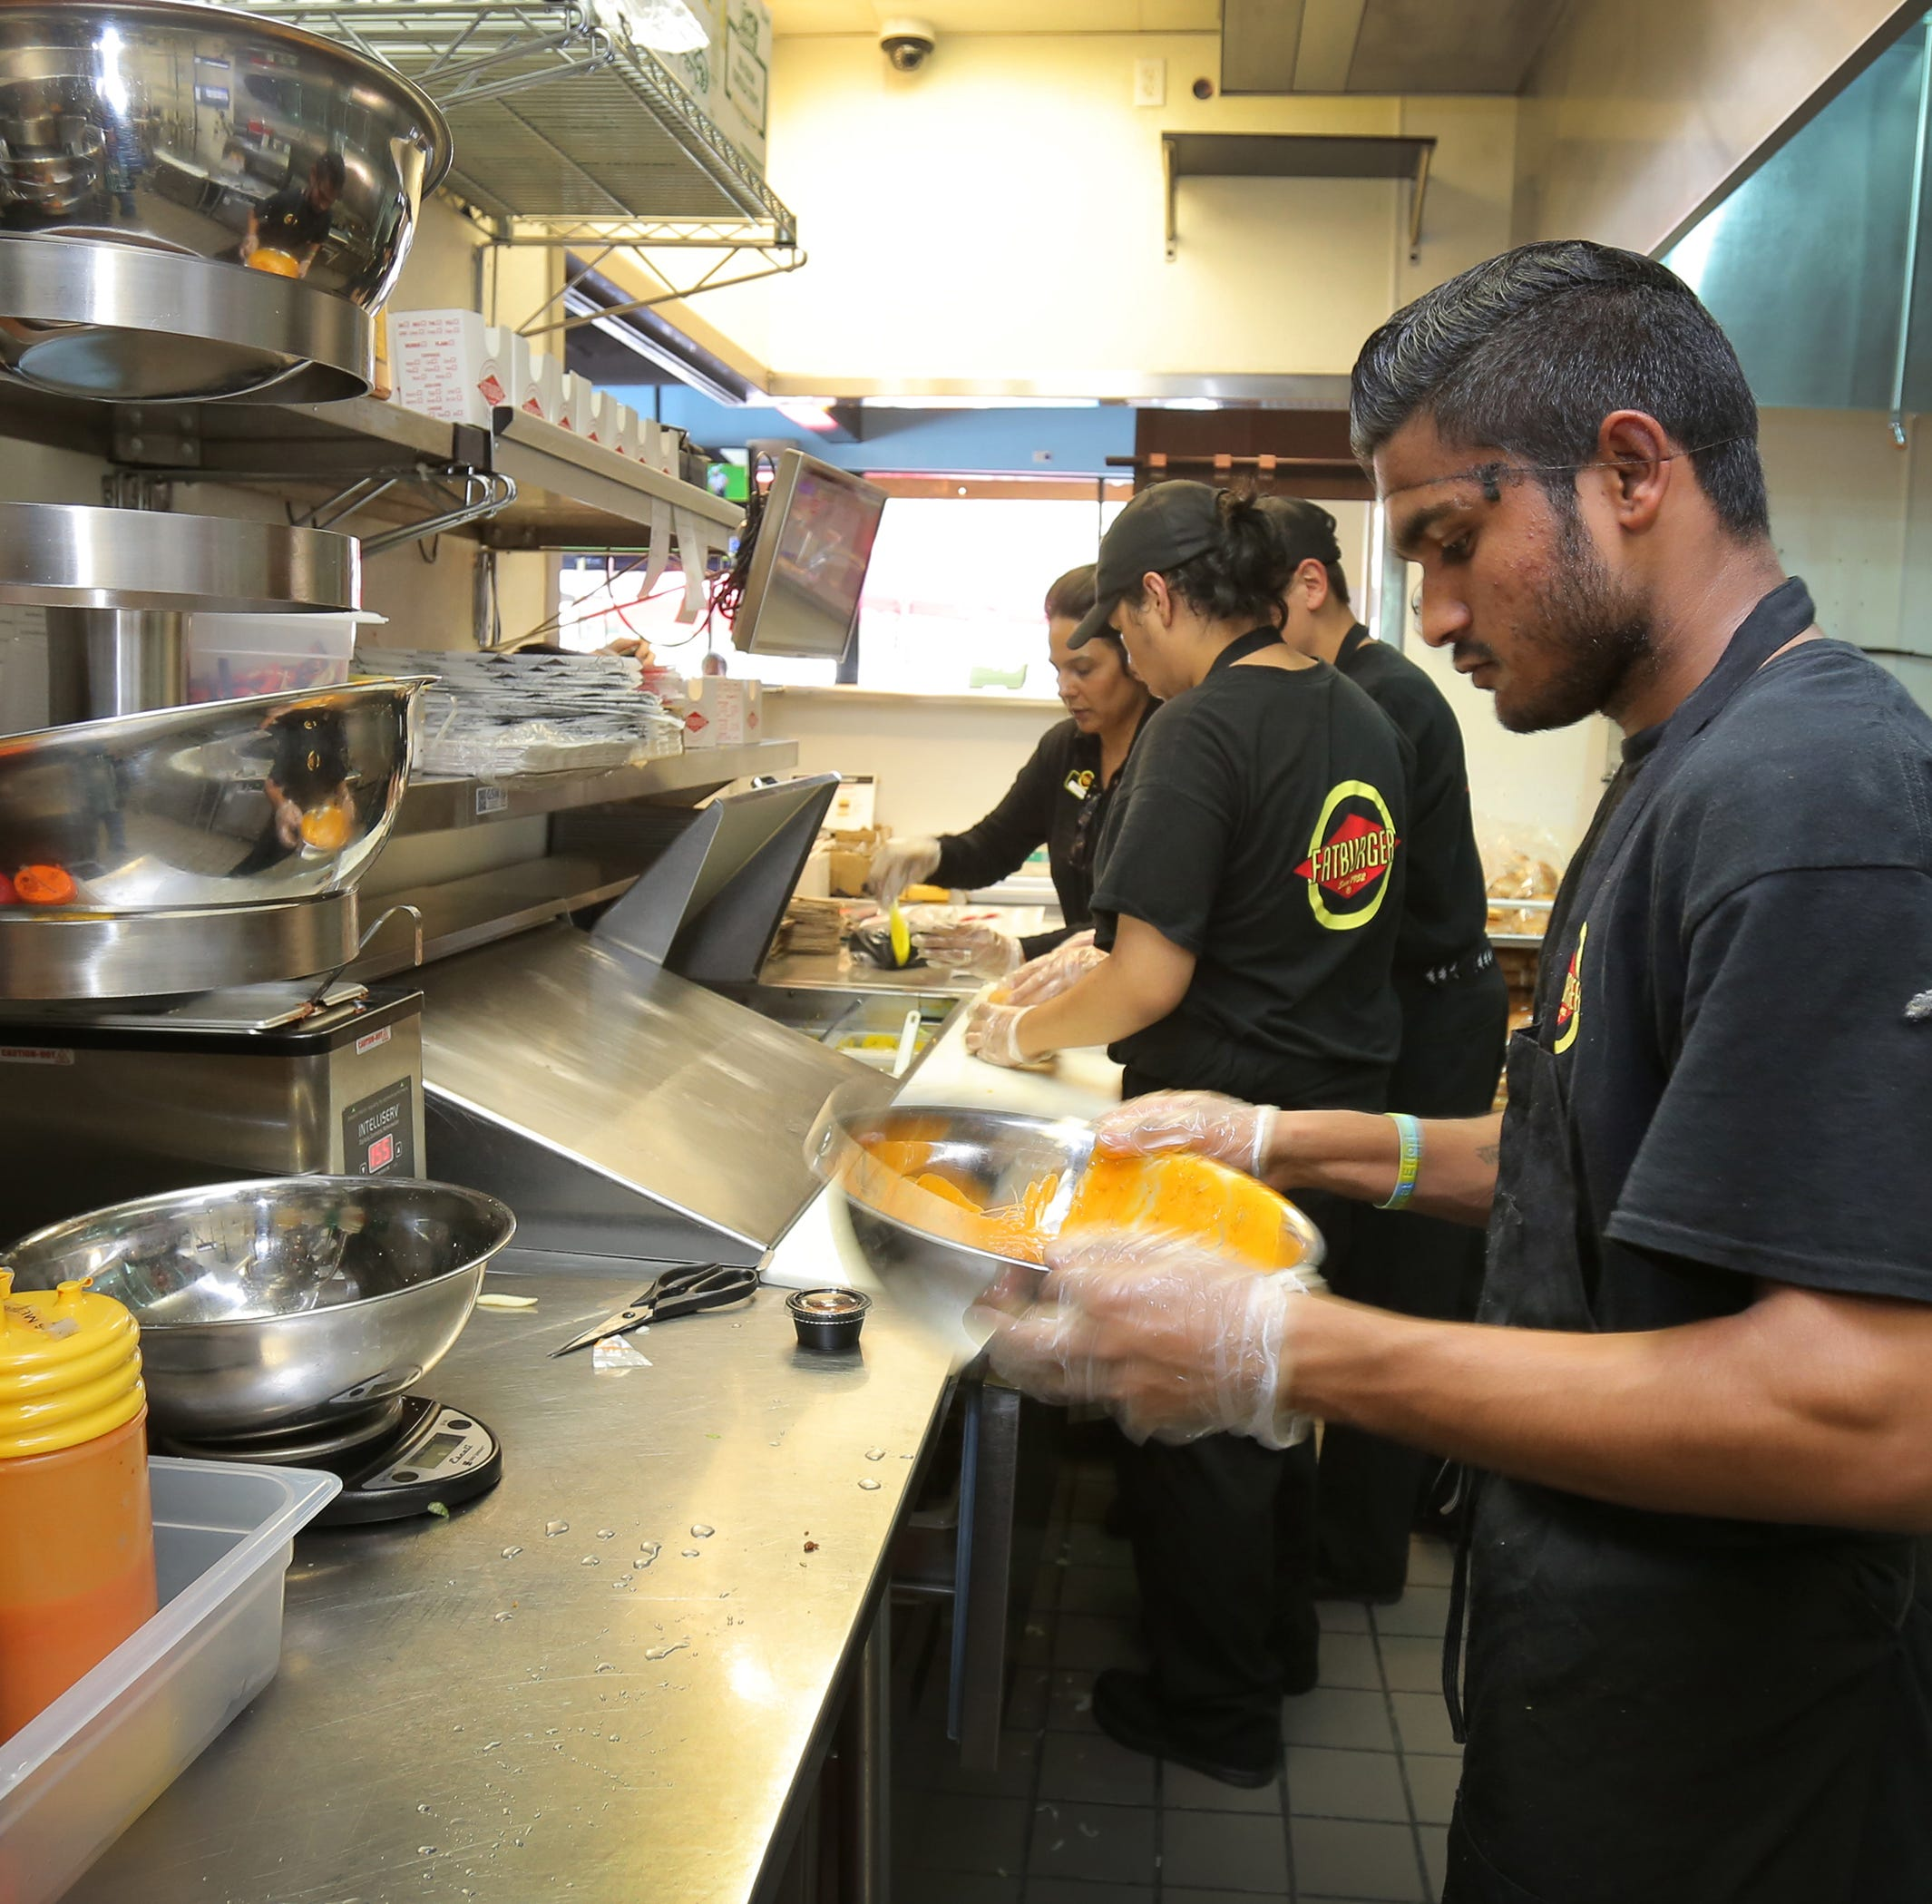 Restaurant review: Variety is the spice of life at Fatburger & Buffalo's Express